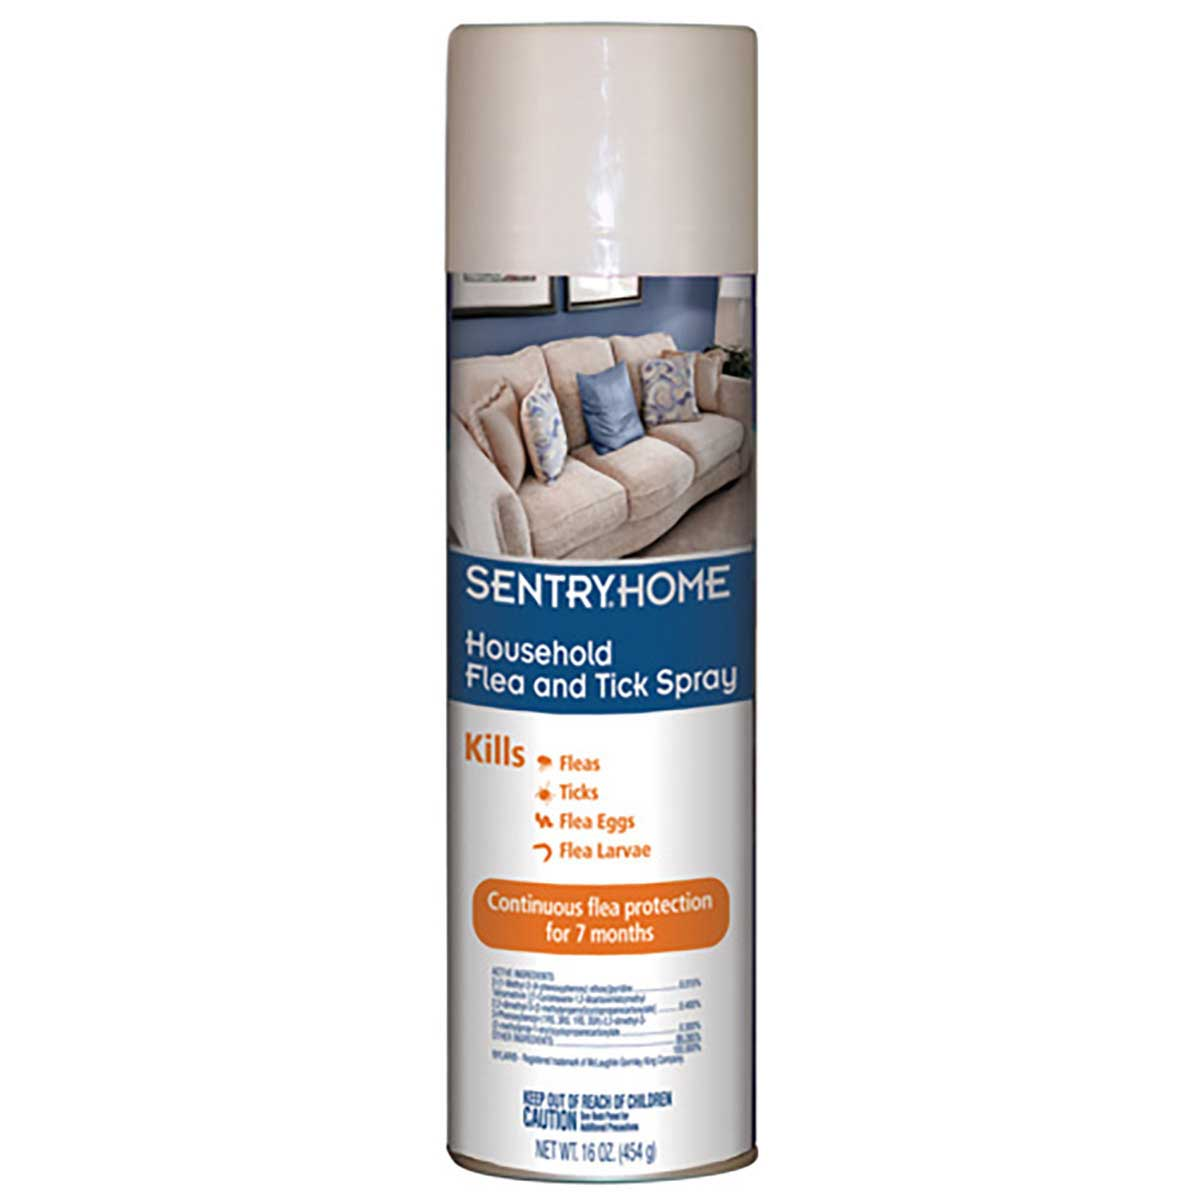 Sentry HOME Household Flea and Tick Spray 16 oz